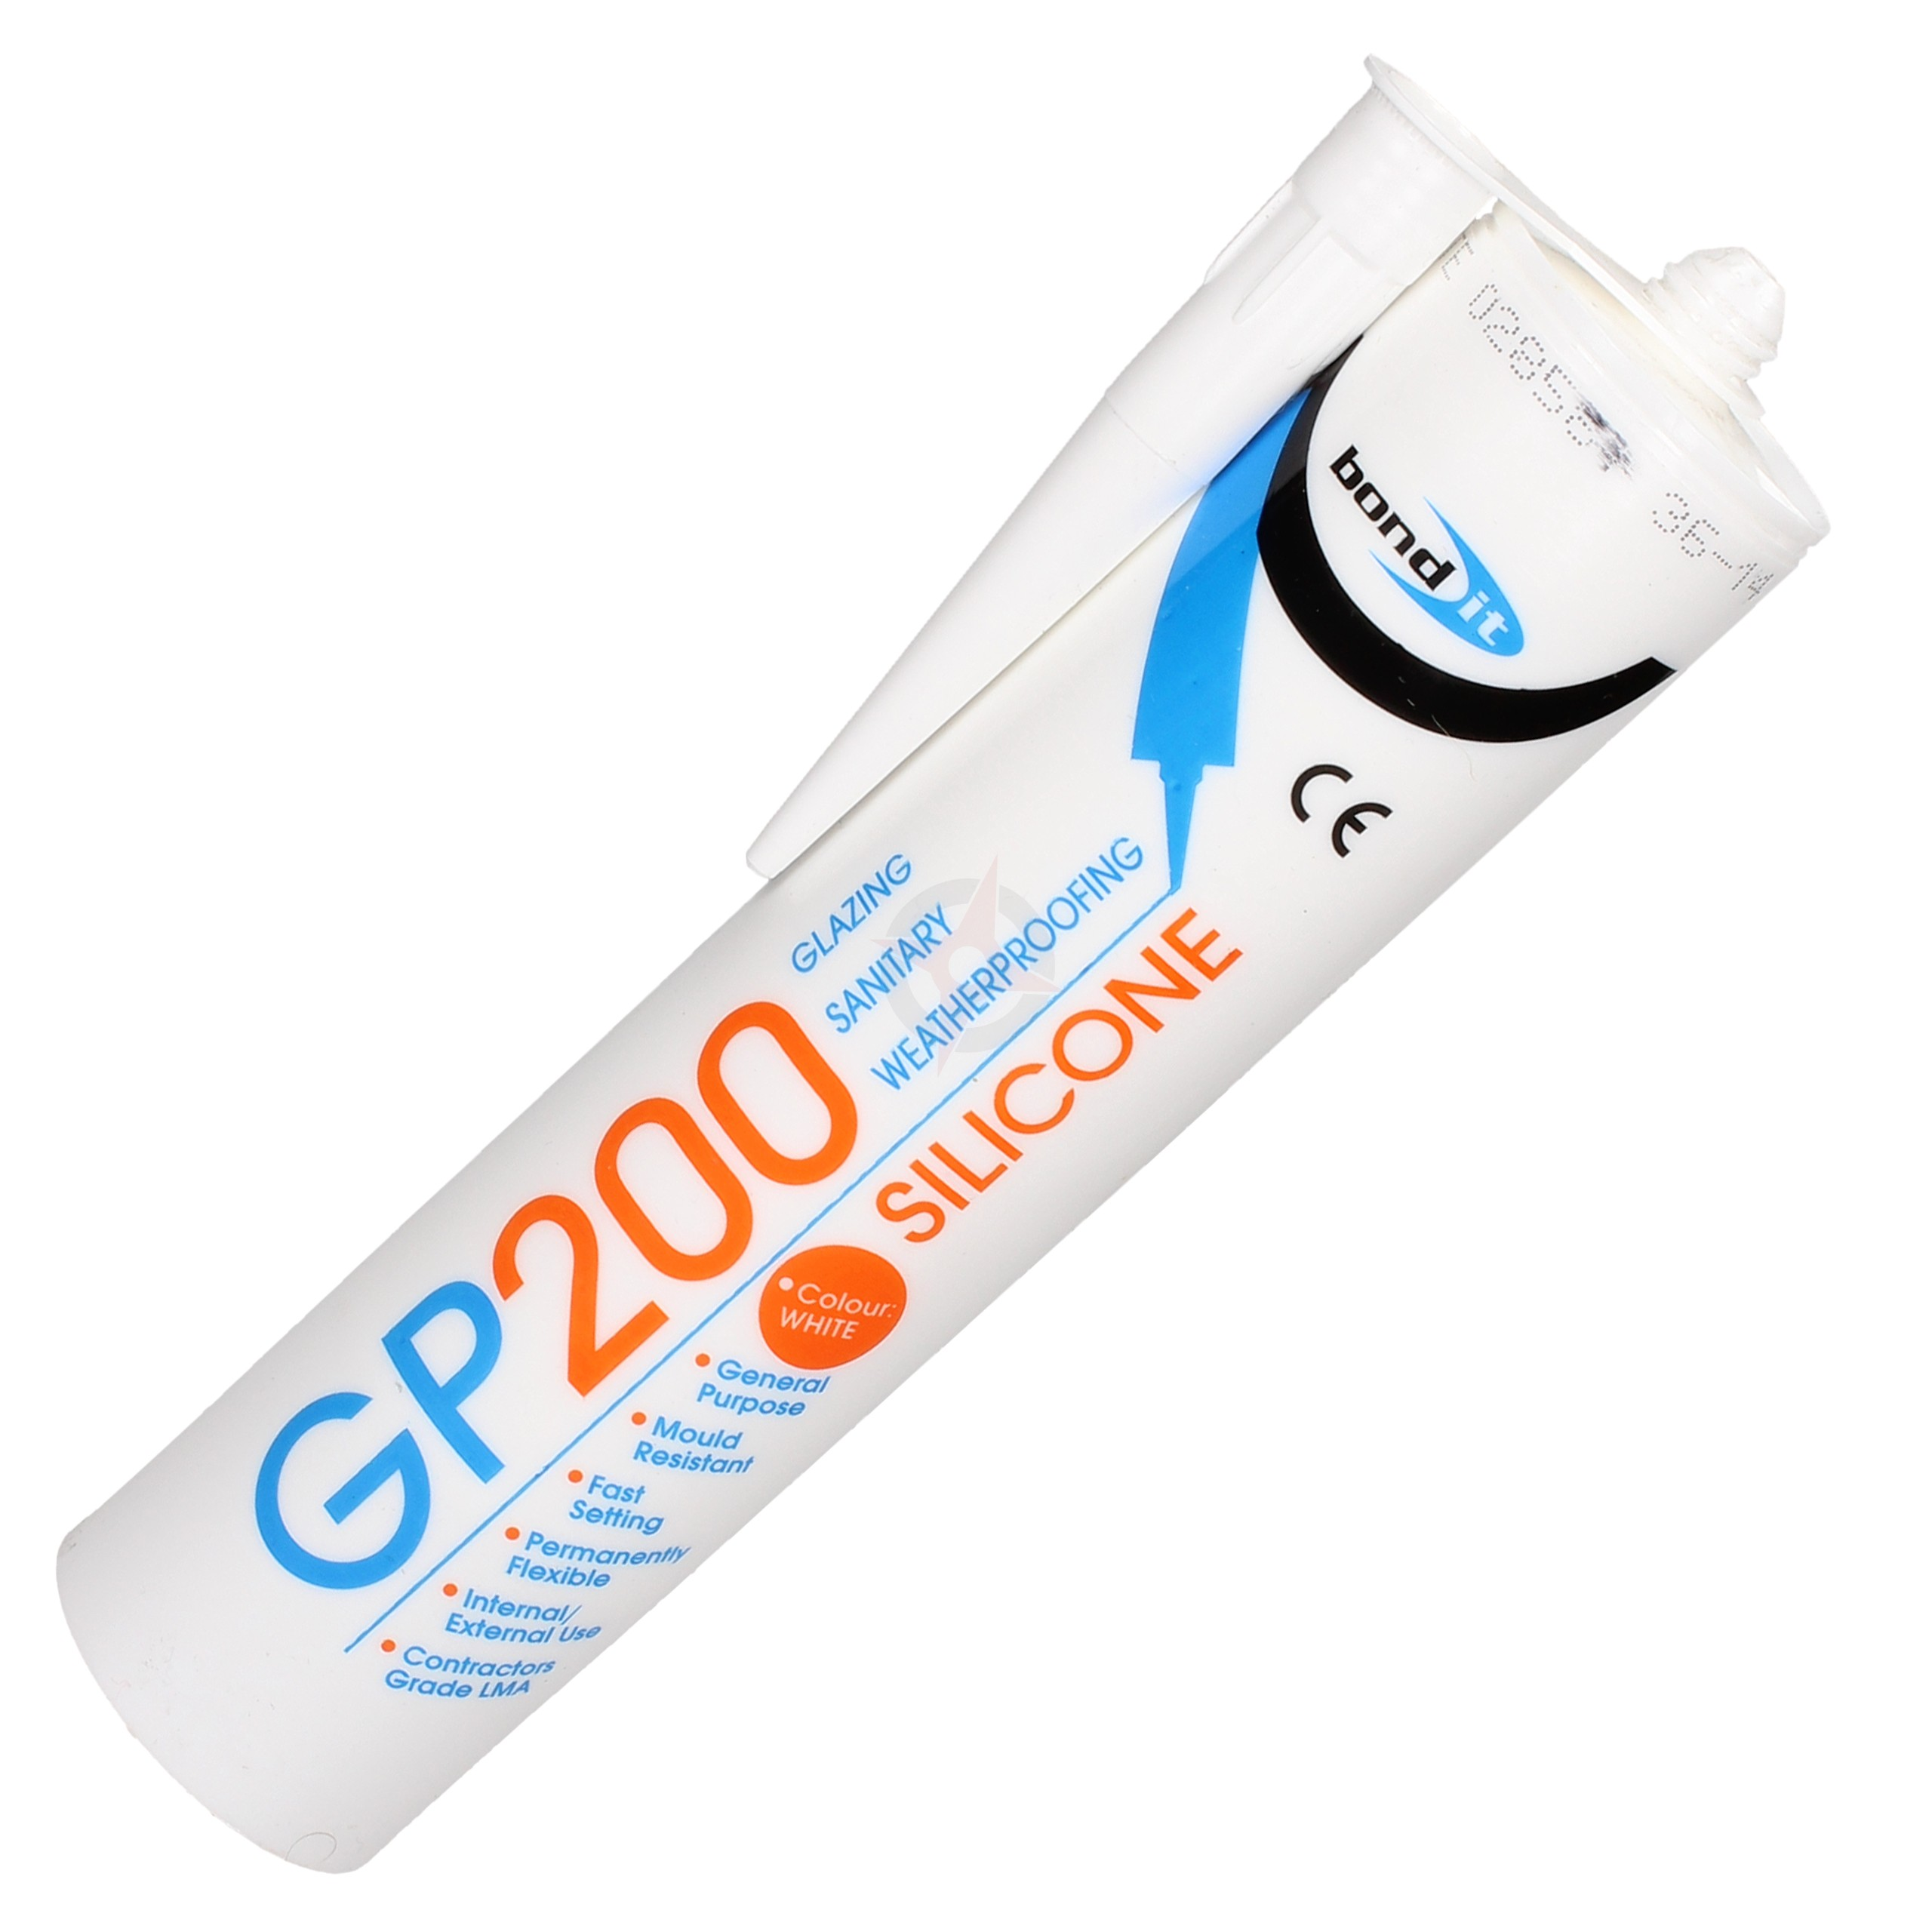 General Purpose Silicone Sealant - White